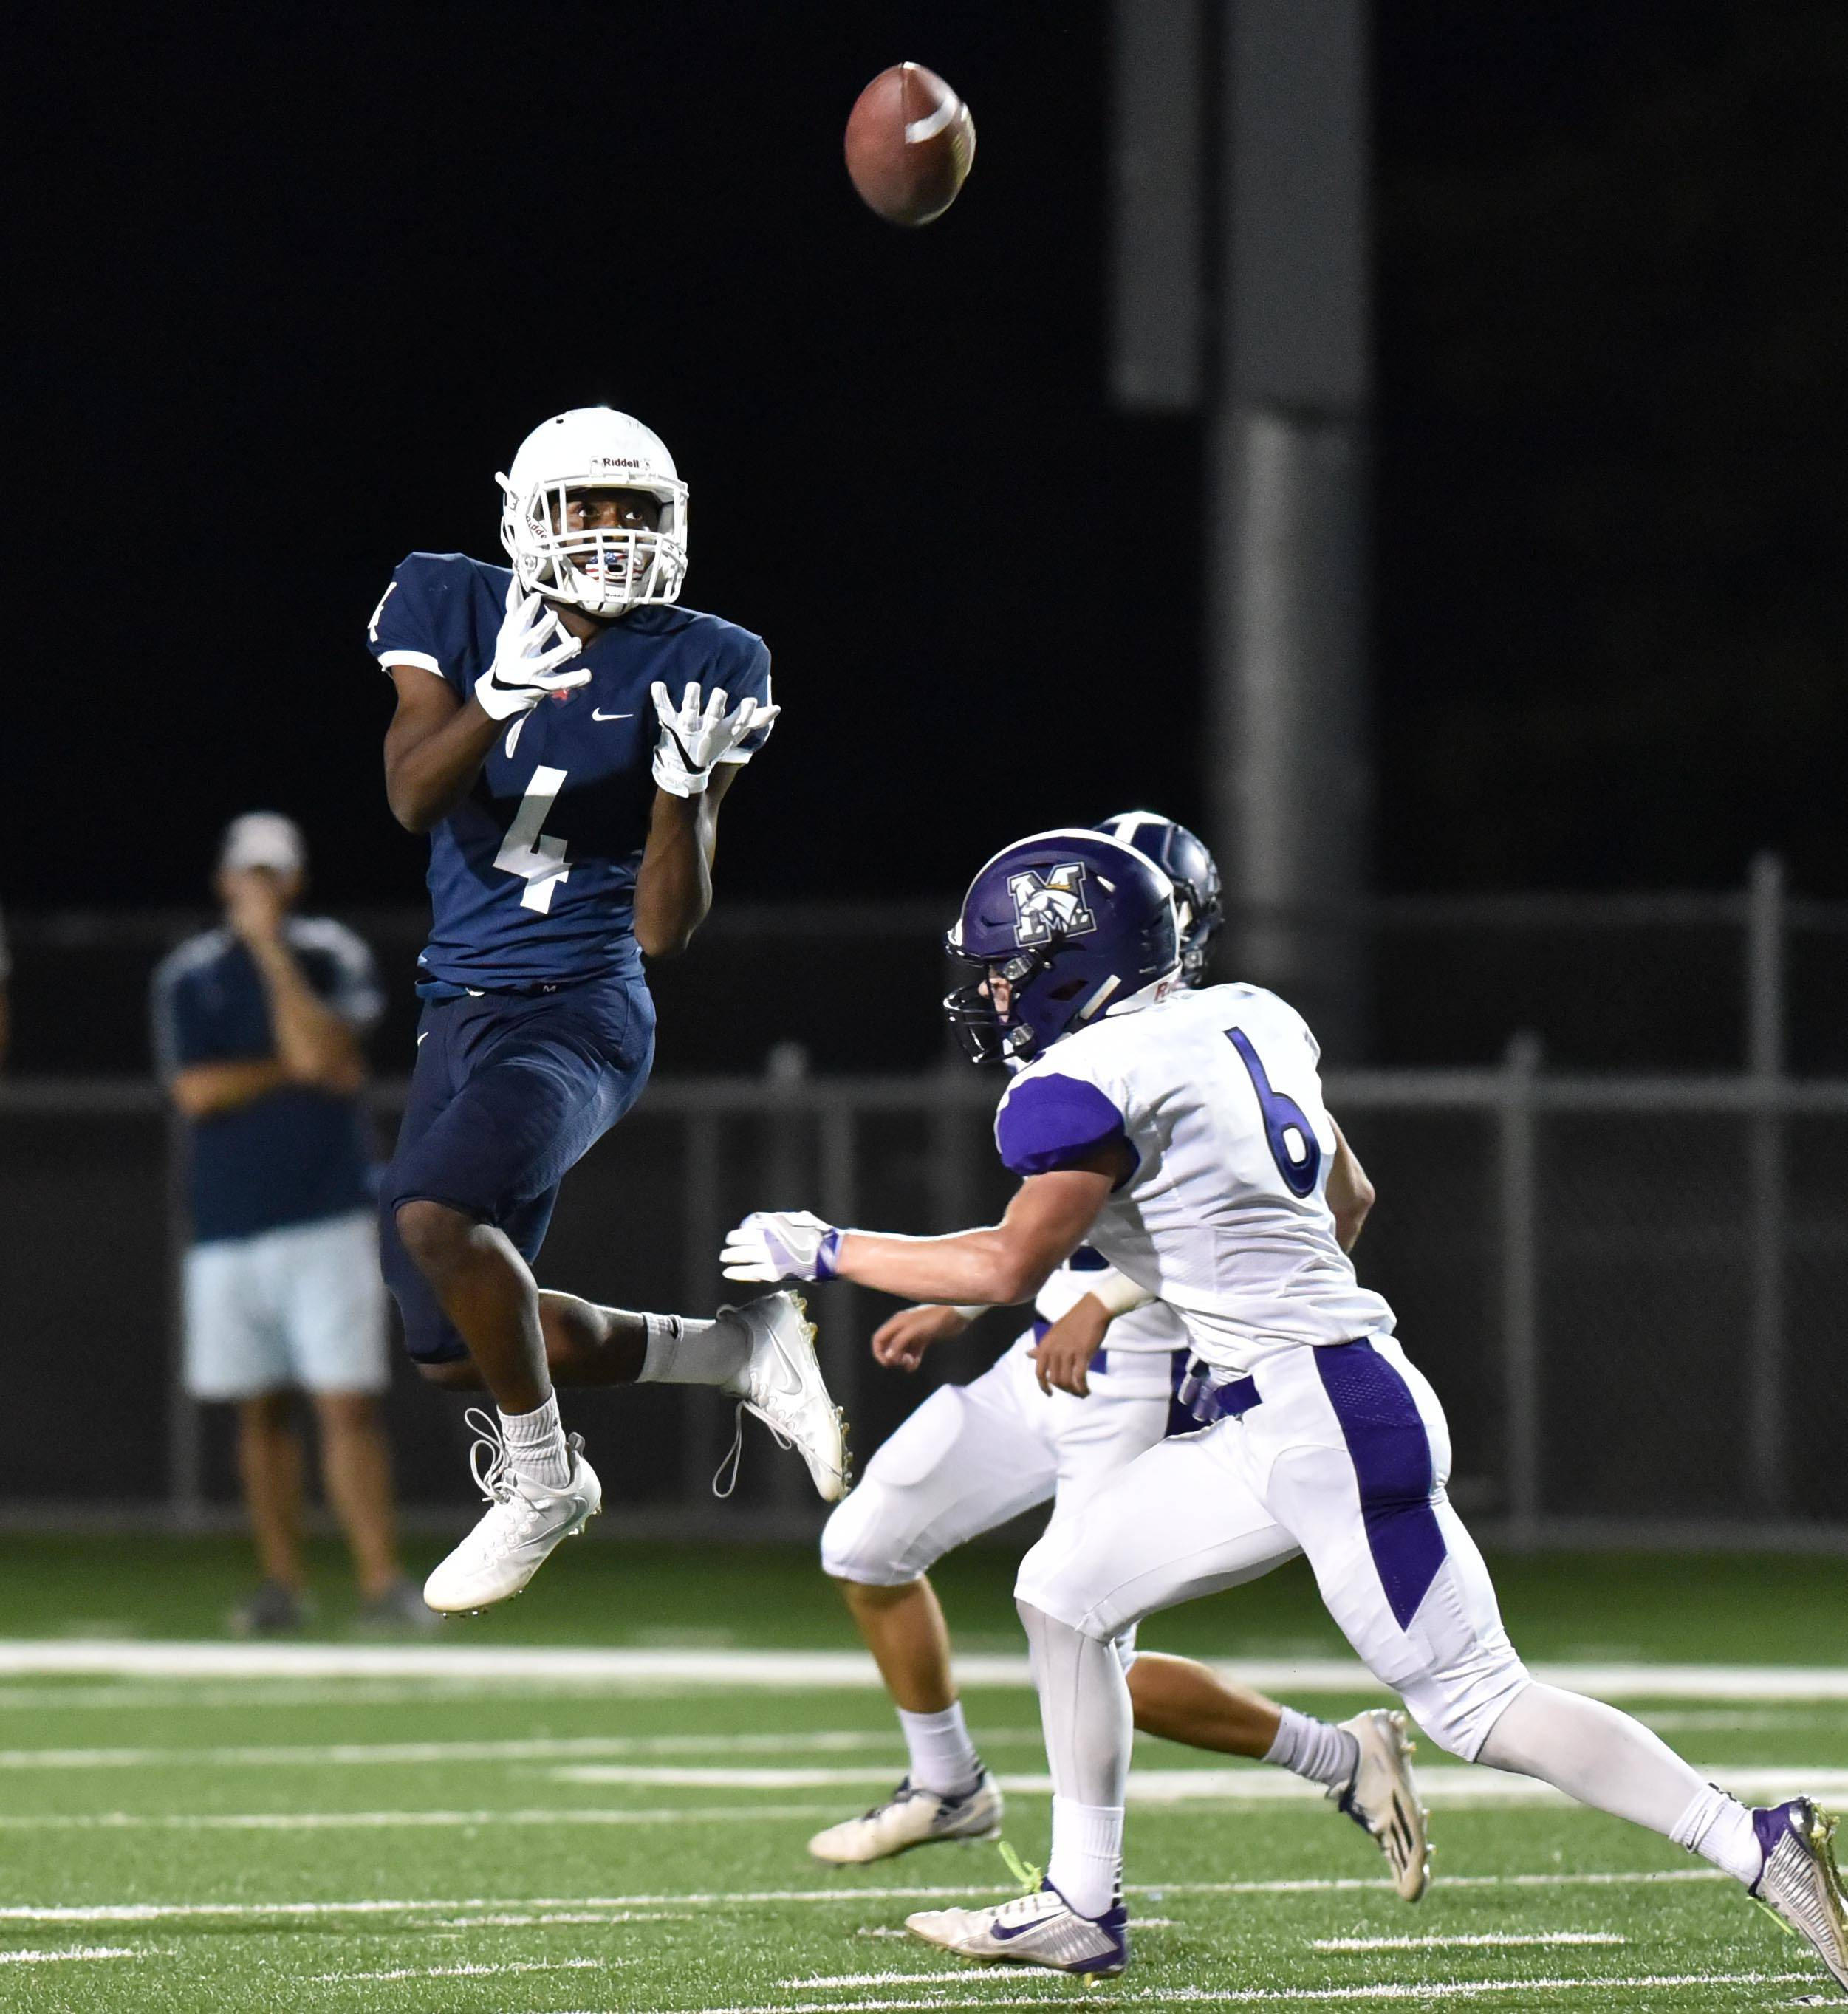 St. Viator's Marc Clark makes a first down catch in the first half as Rolling Meadows' Nick Delporte and Willis Goodwin close in for the tackle Friday in Arlington Heights.